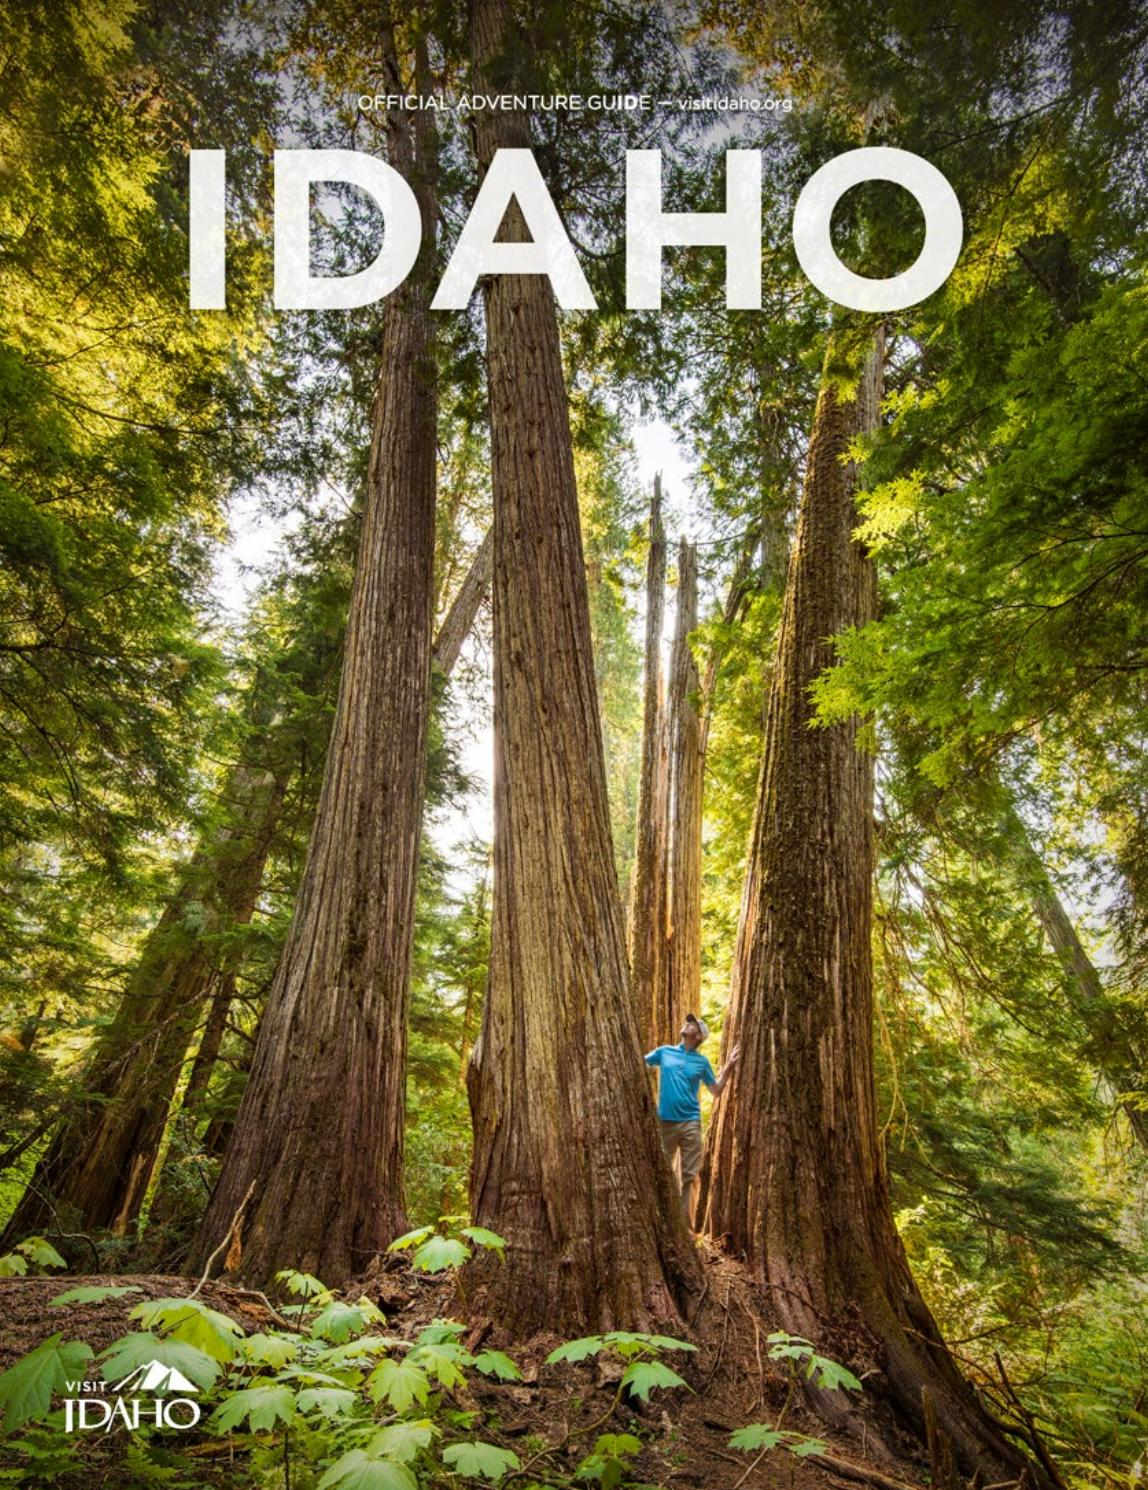 2018 Idaho Travel Guide by Visit Idaho - issuu